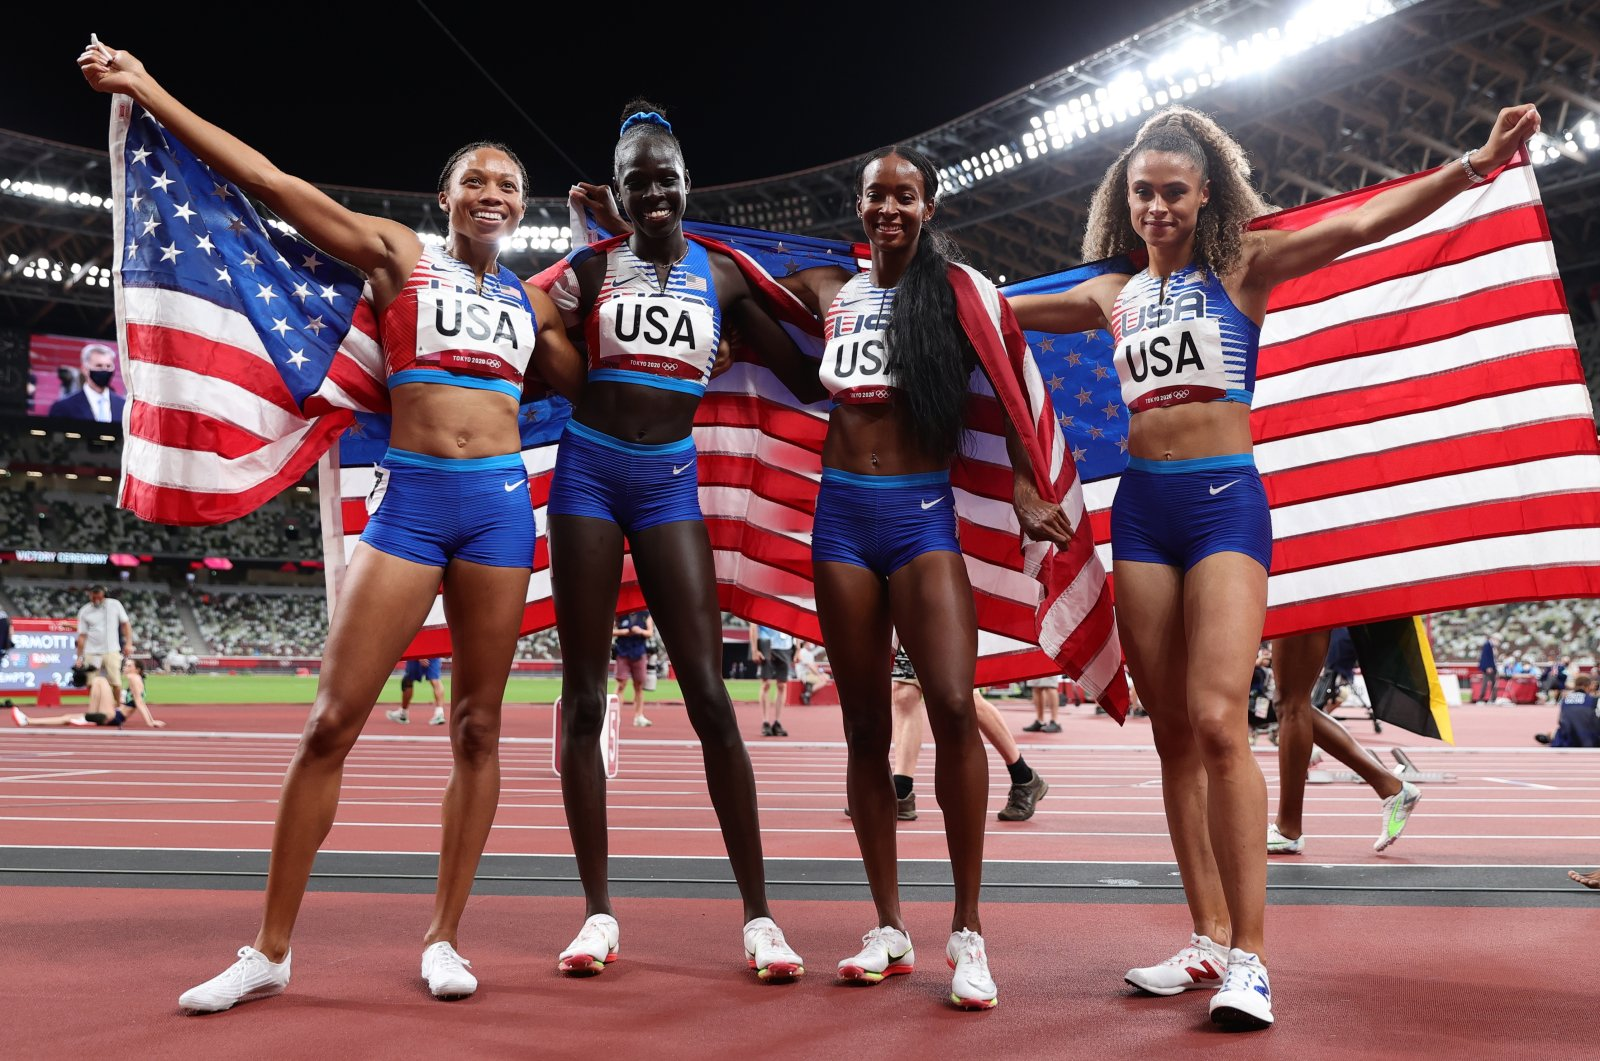 Team USA's Sydney McLaughlin, Allyson Felix, Dalilah Muhammad and Athing Mu celebrate winning women's 4 x 400m relay gold at the Tokyo 2020 Olympic Games at the Olympic Stadium, Tokyo, Japan, Aug. 7, 2021. (EPA Photo)